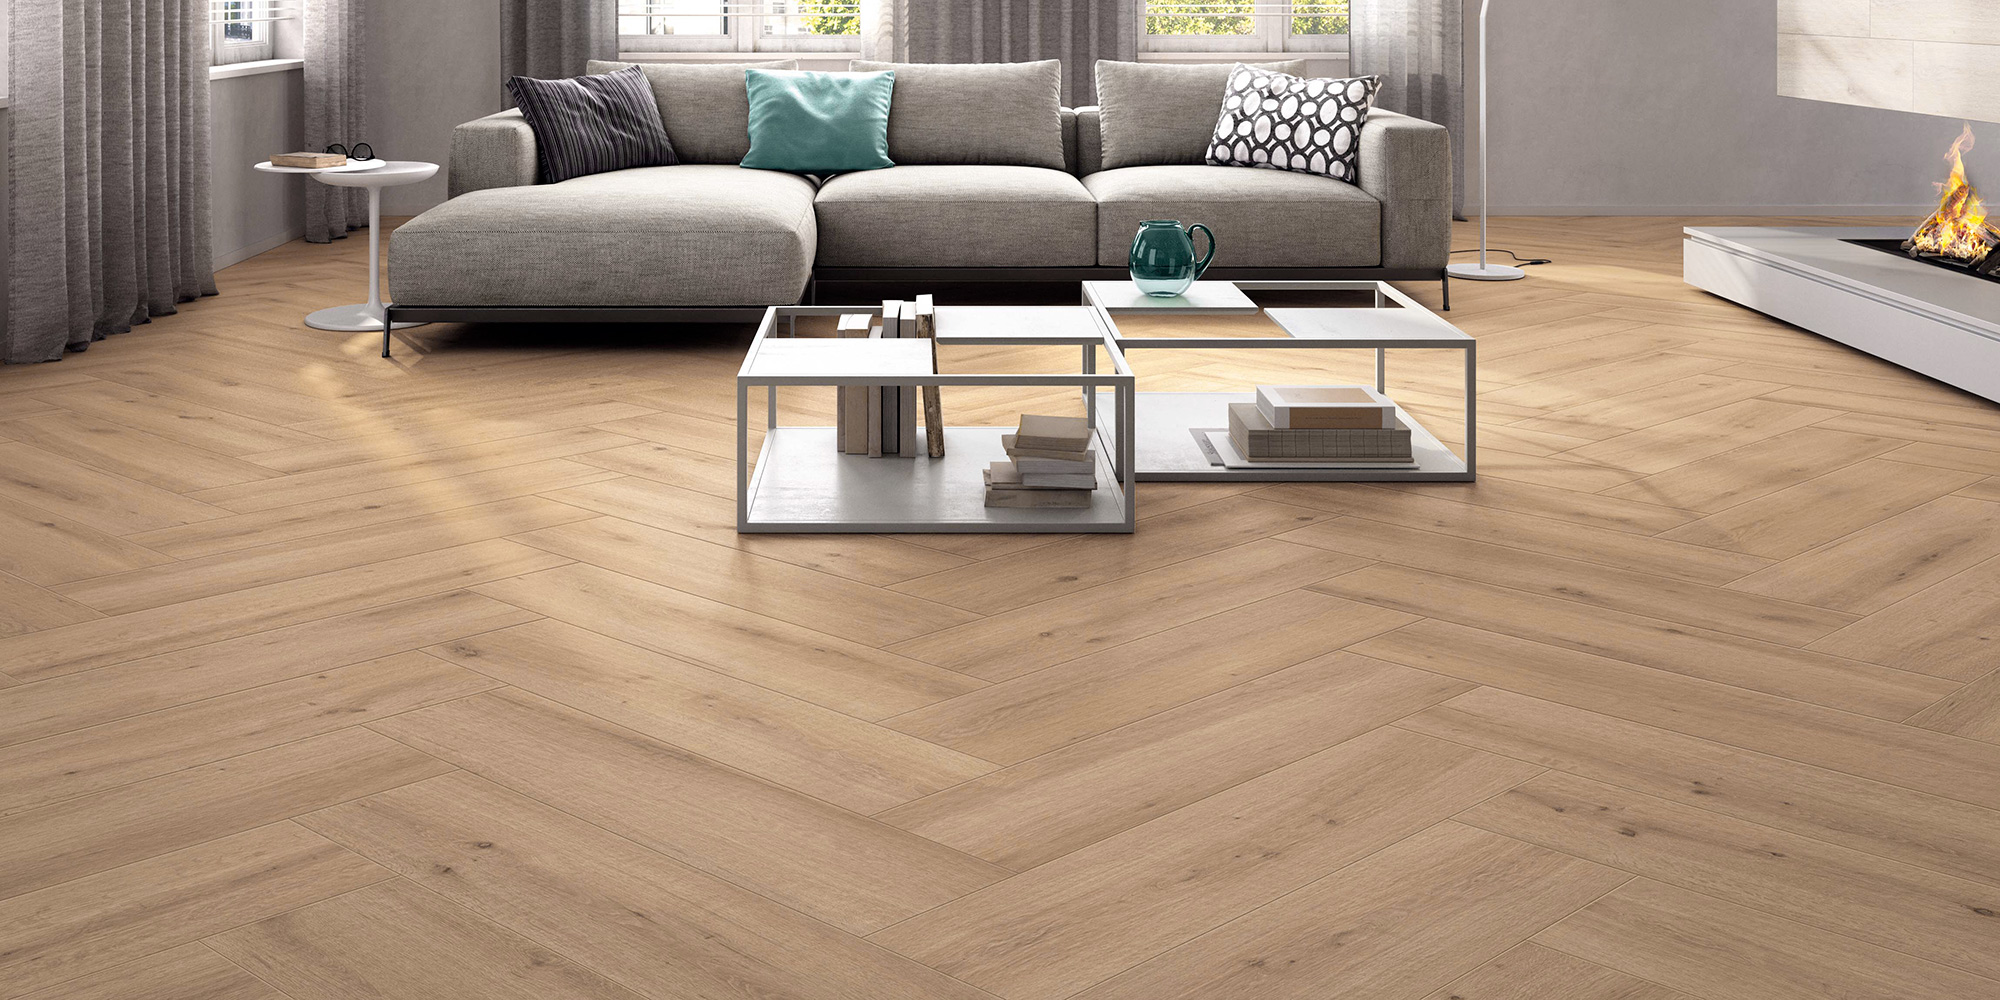 Breath 22.5x90. Oak plank look porcelain wall and floor tiles with anti-slip rating R10 A.